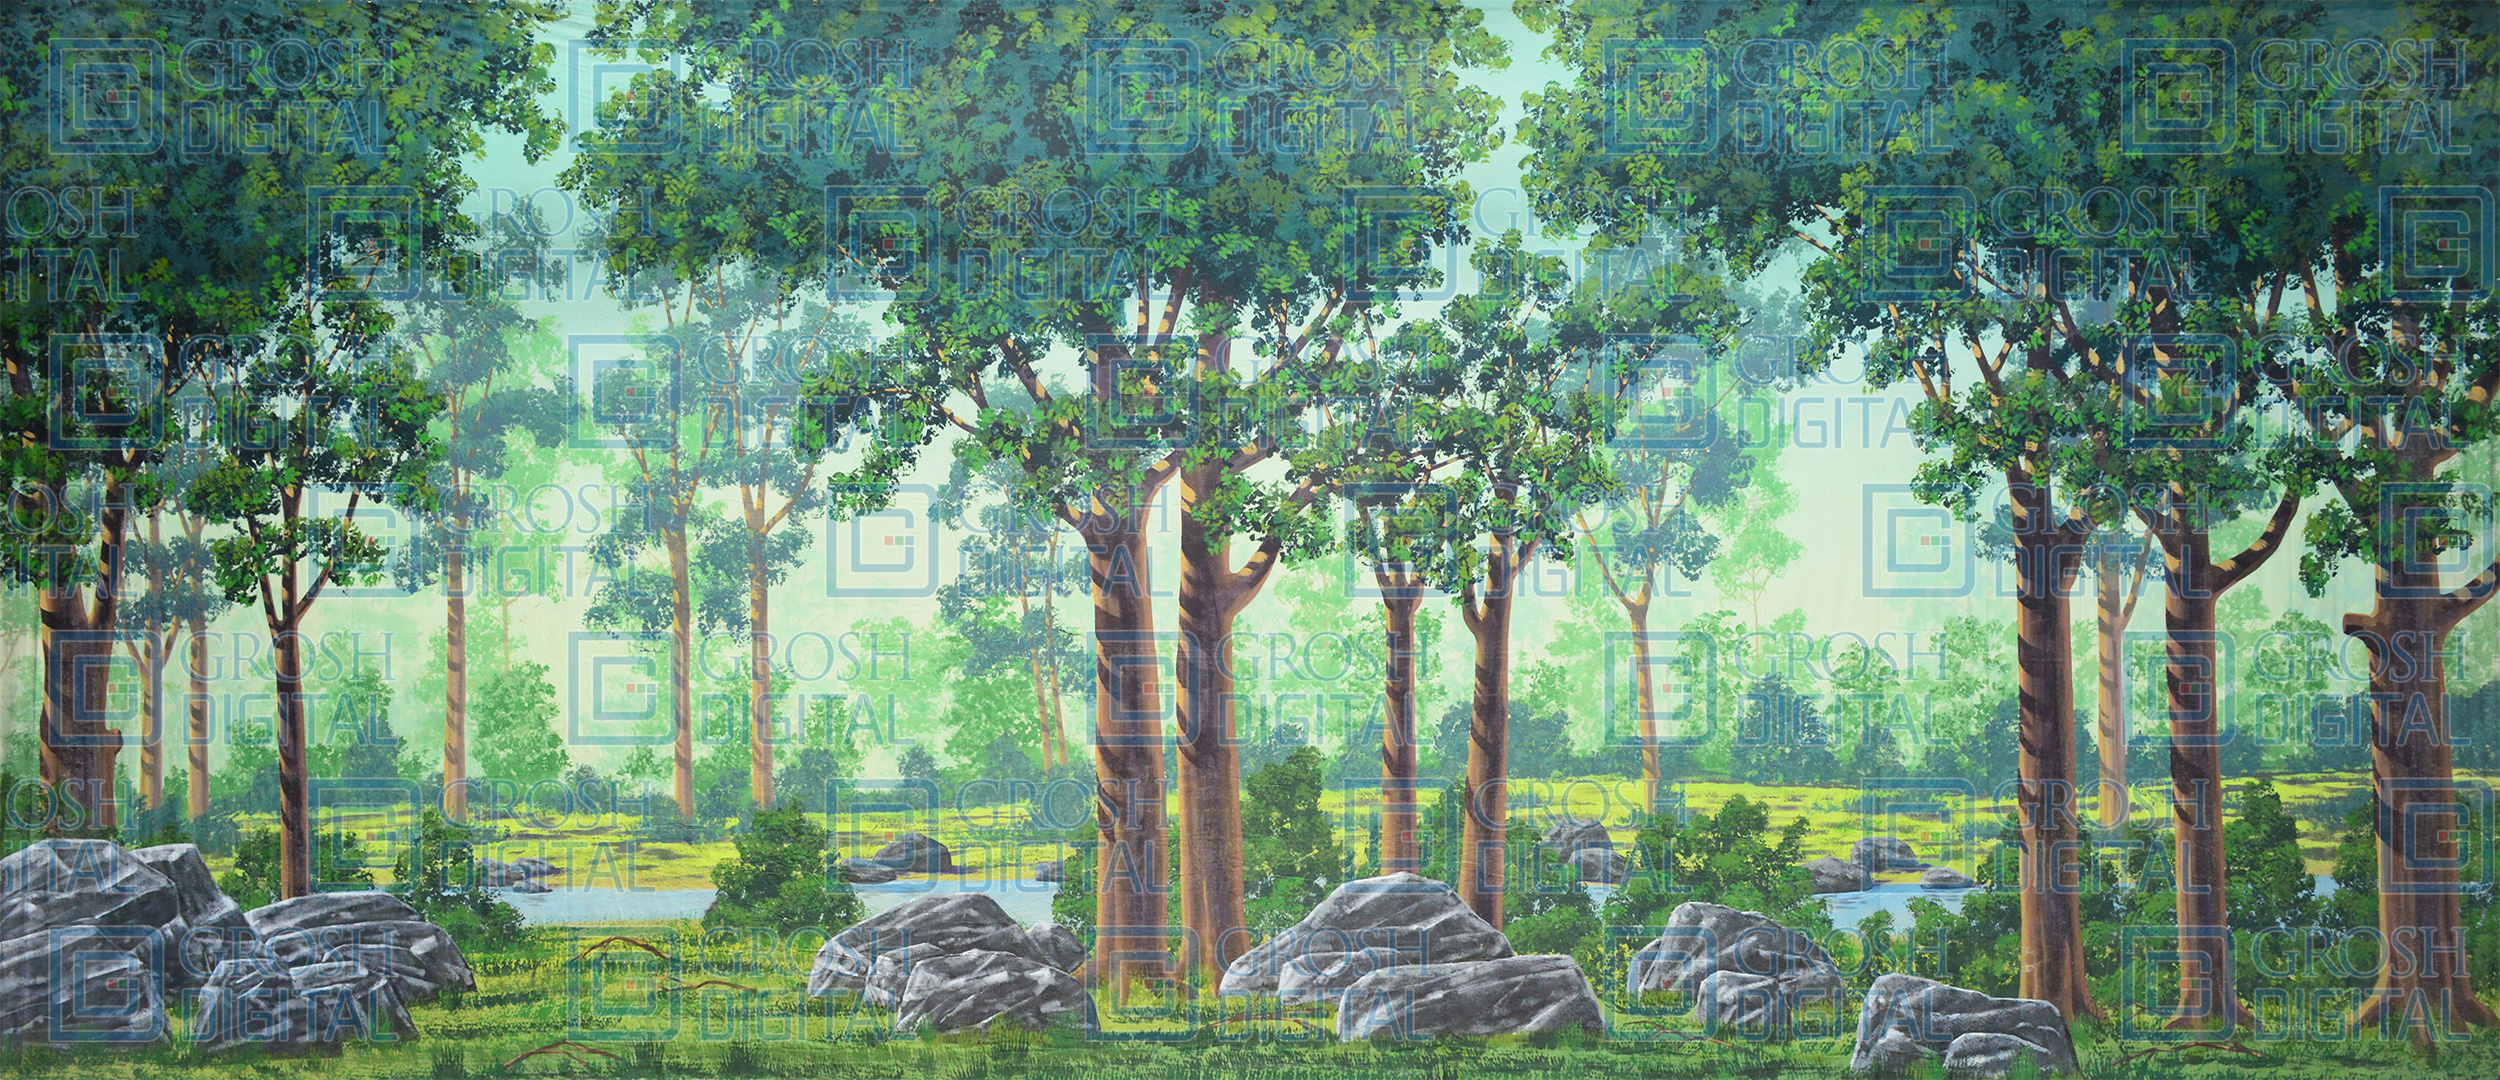 Forest Projected Backdrop for Addams Family, Alice in Wonderland, Beauty and the Beast, Cinderella, Forest, Into the Woods, Lion King, Madagascar, Peter Pan, Seven Brides for Seven Brothers, Shrek, Sleeping Beauty, Wizard of Oz